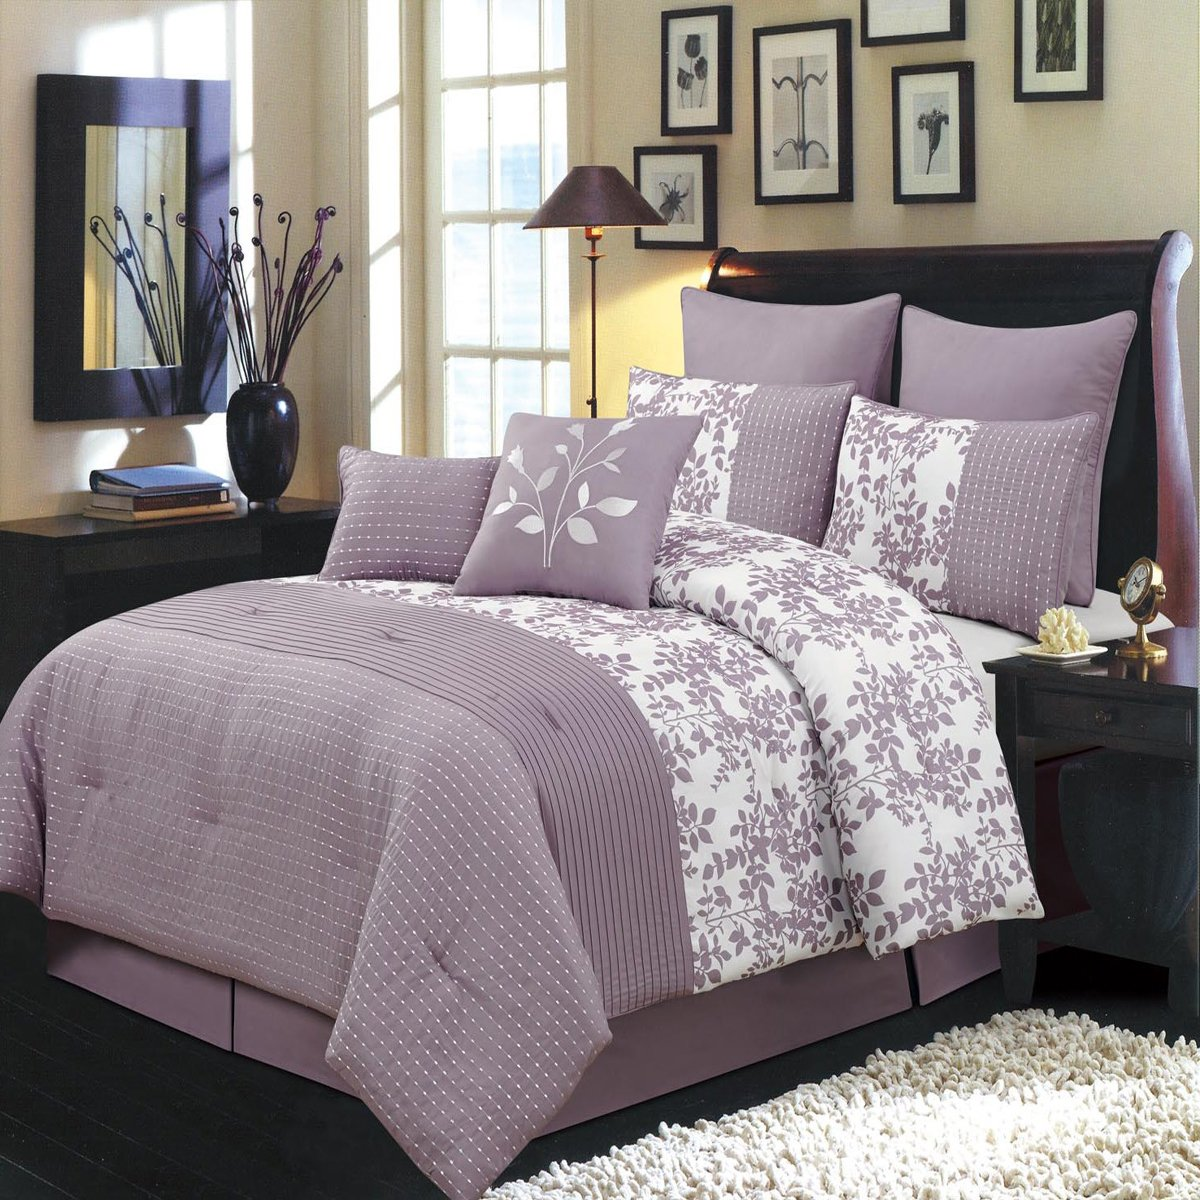 Bliss Purple and White King size Luxury 8 piece comforter set